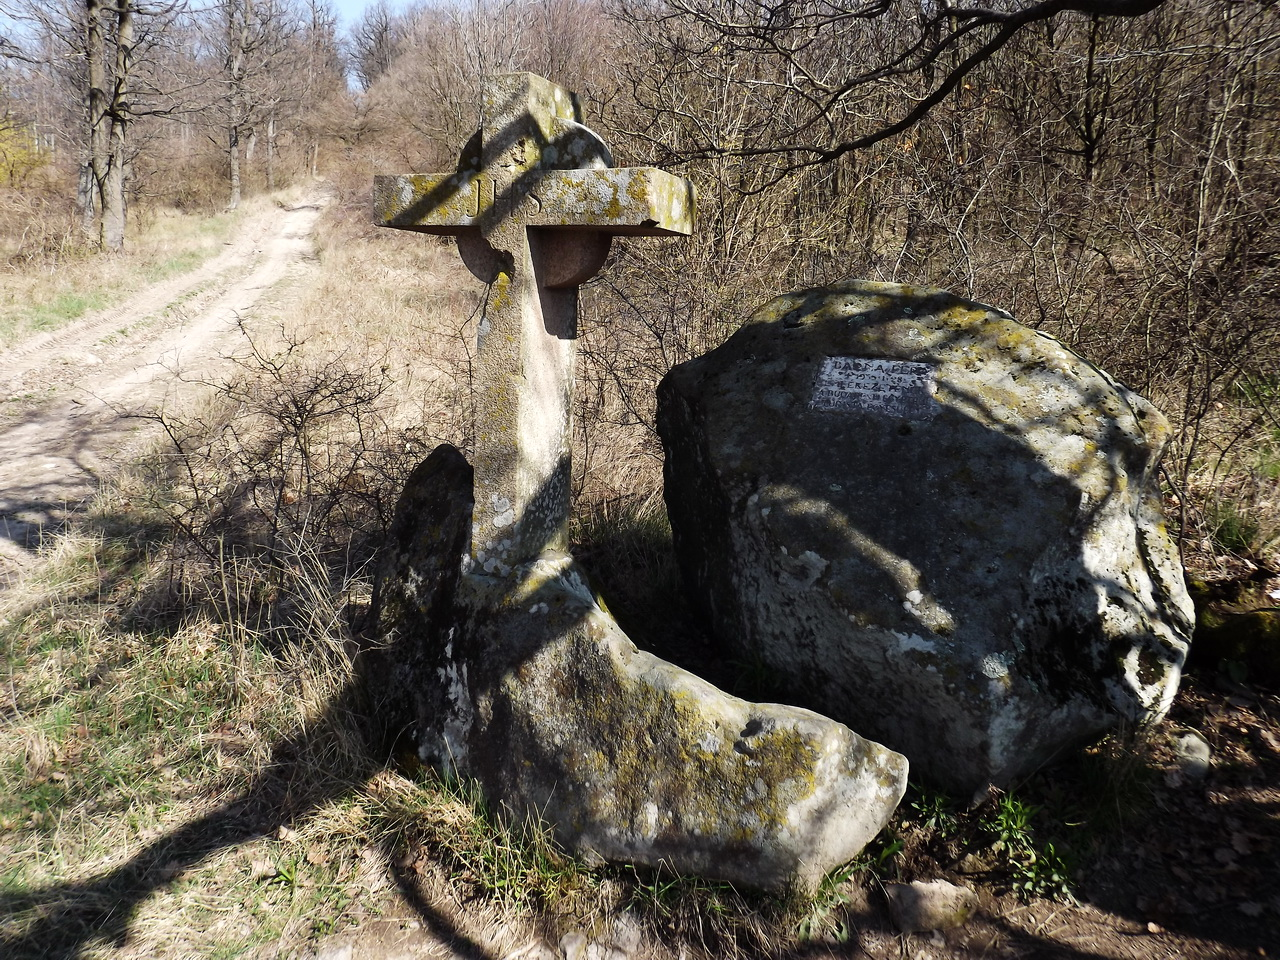 The Barna Ferenc Stone Cross stands beside the dirt road